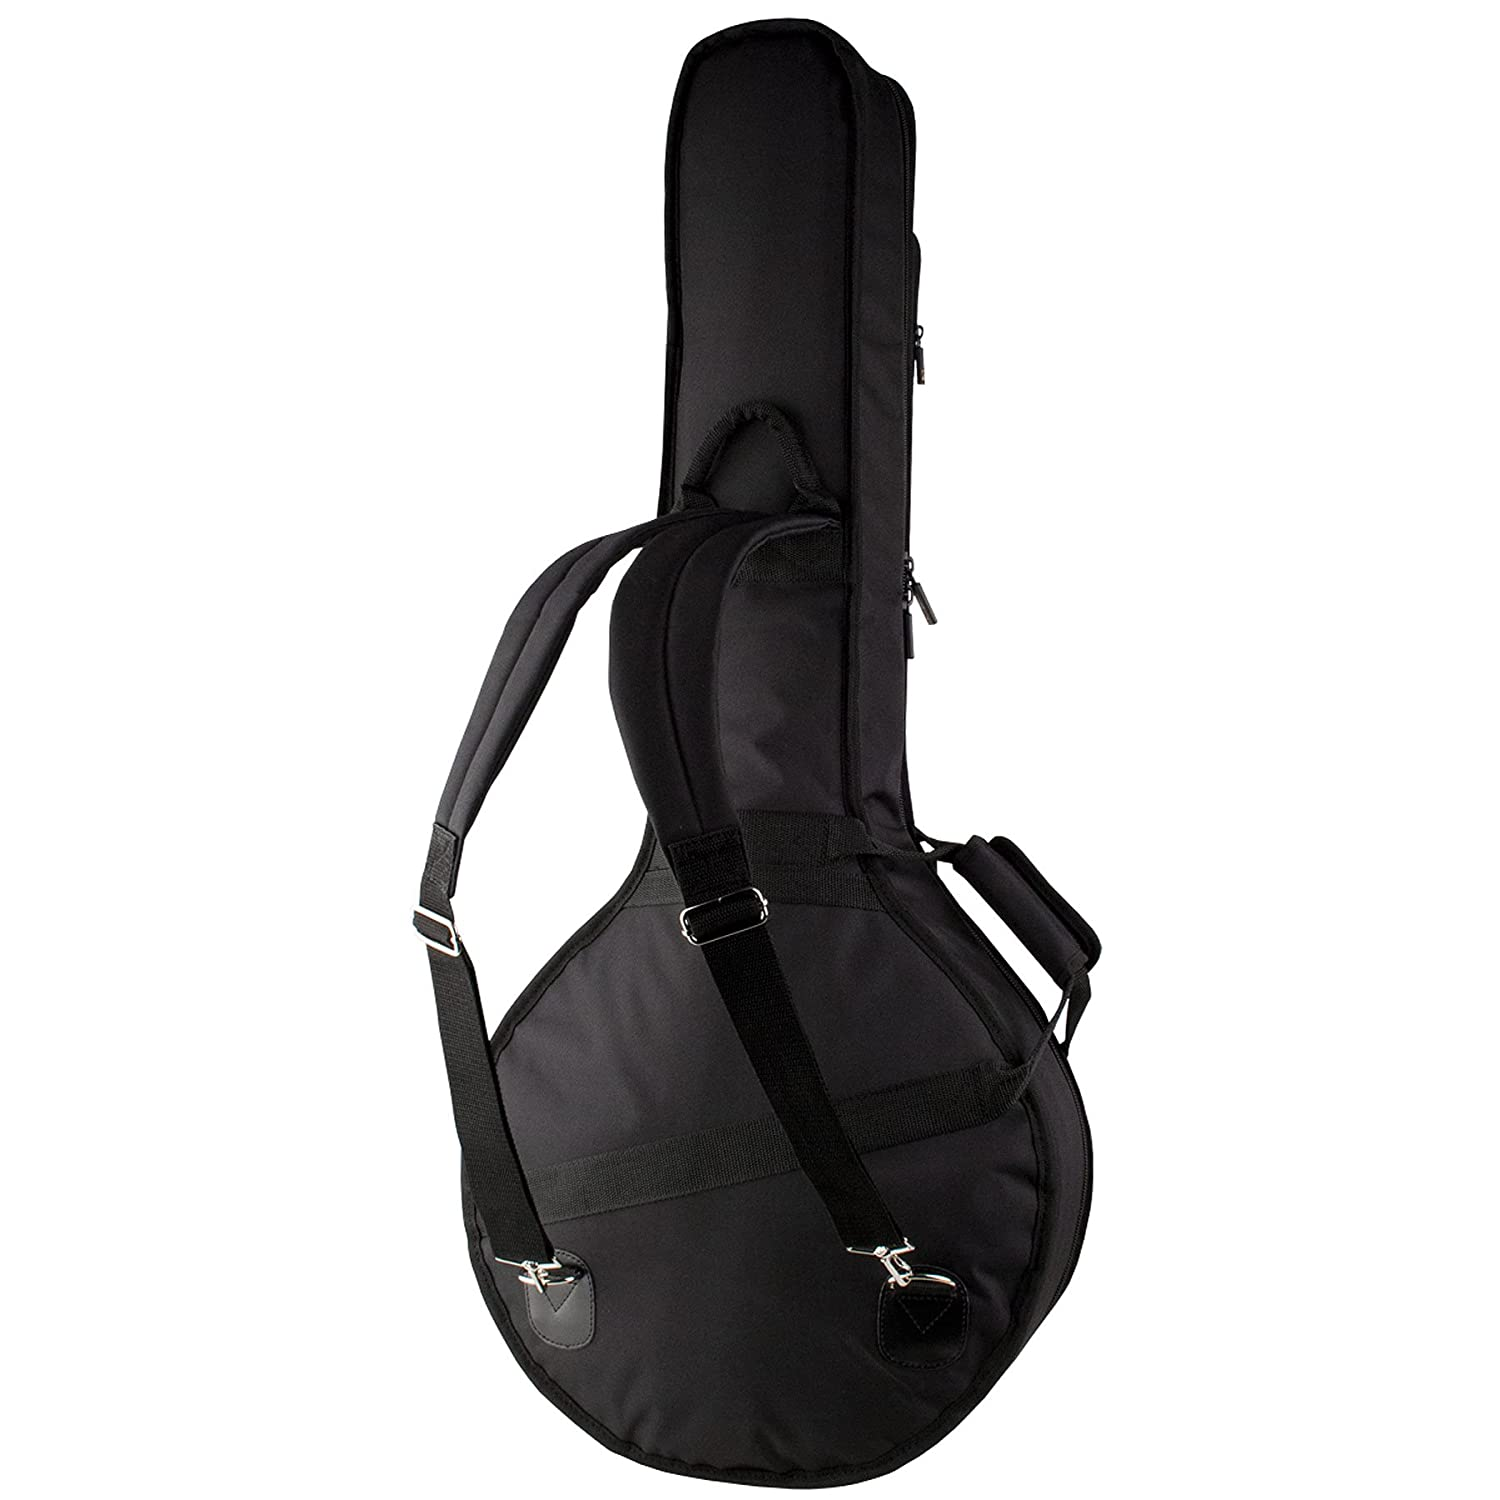 protec banjo gig bag gold series model cf204